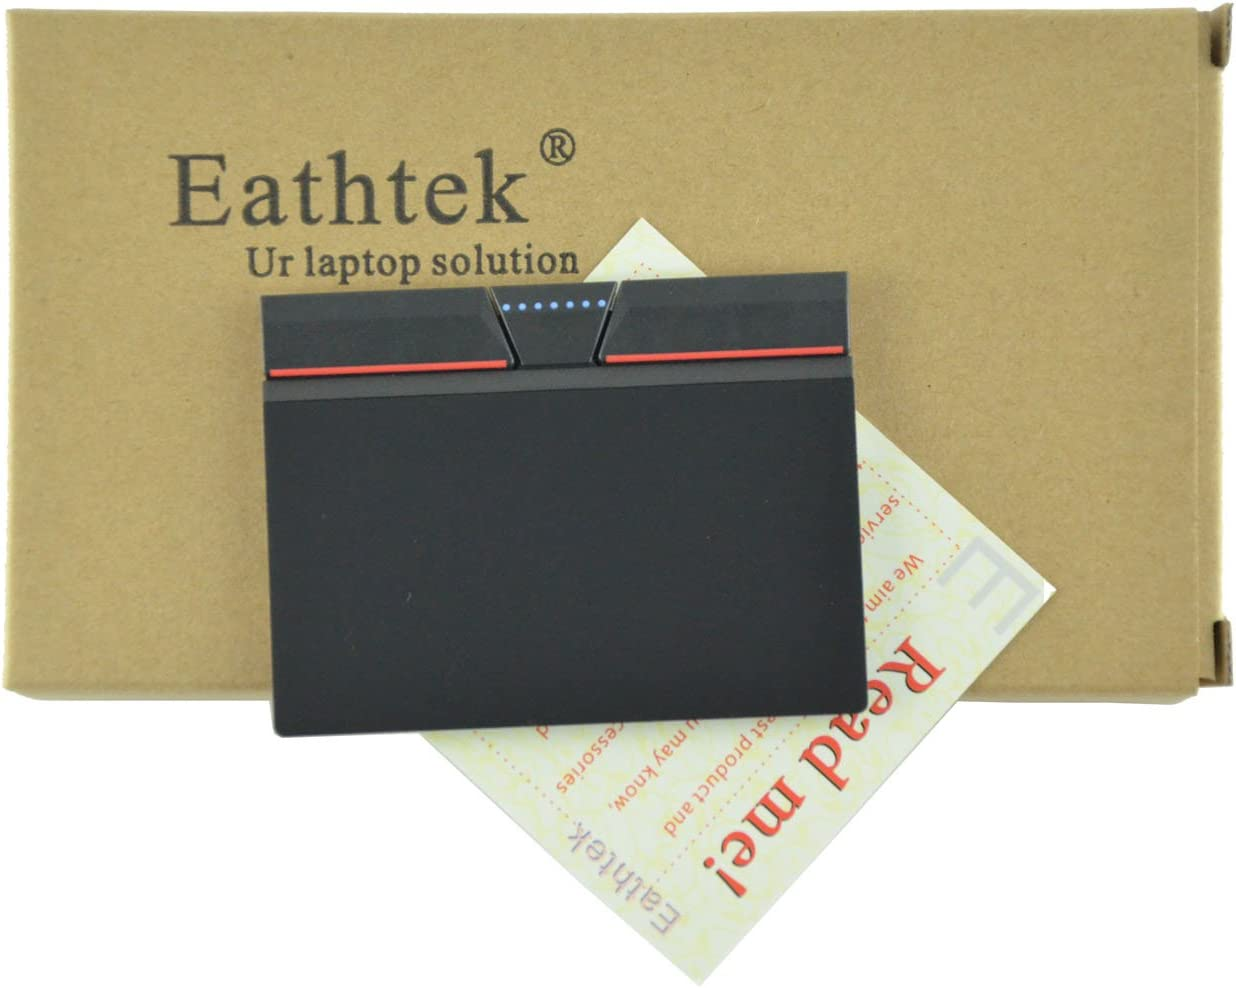 Eathtek Replacement Touchpad Trackpad with Three Button Keys for Thinkpad T440 T440P T440S T450S T450 T540P T431S T550 L440 L540 L450 T450S W540 W541 W550S T550 Series